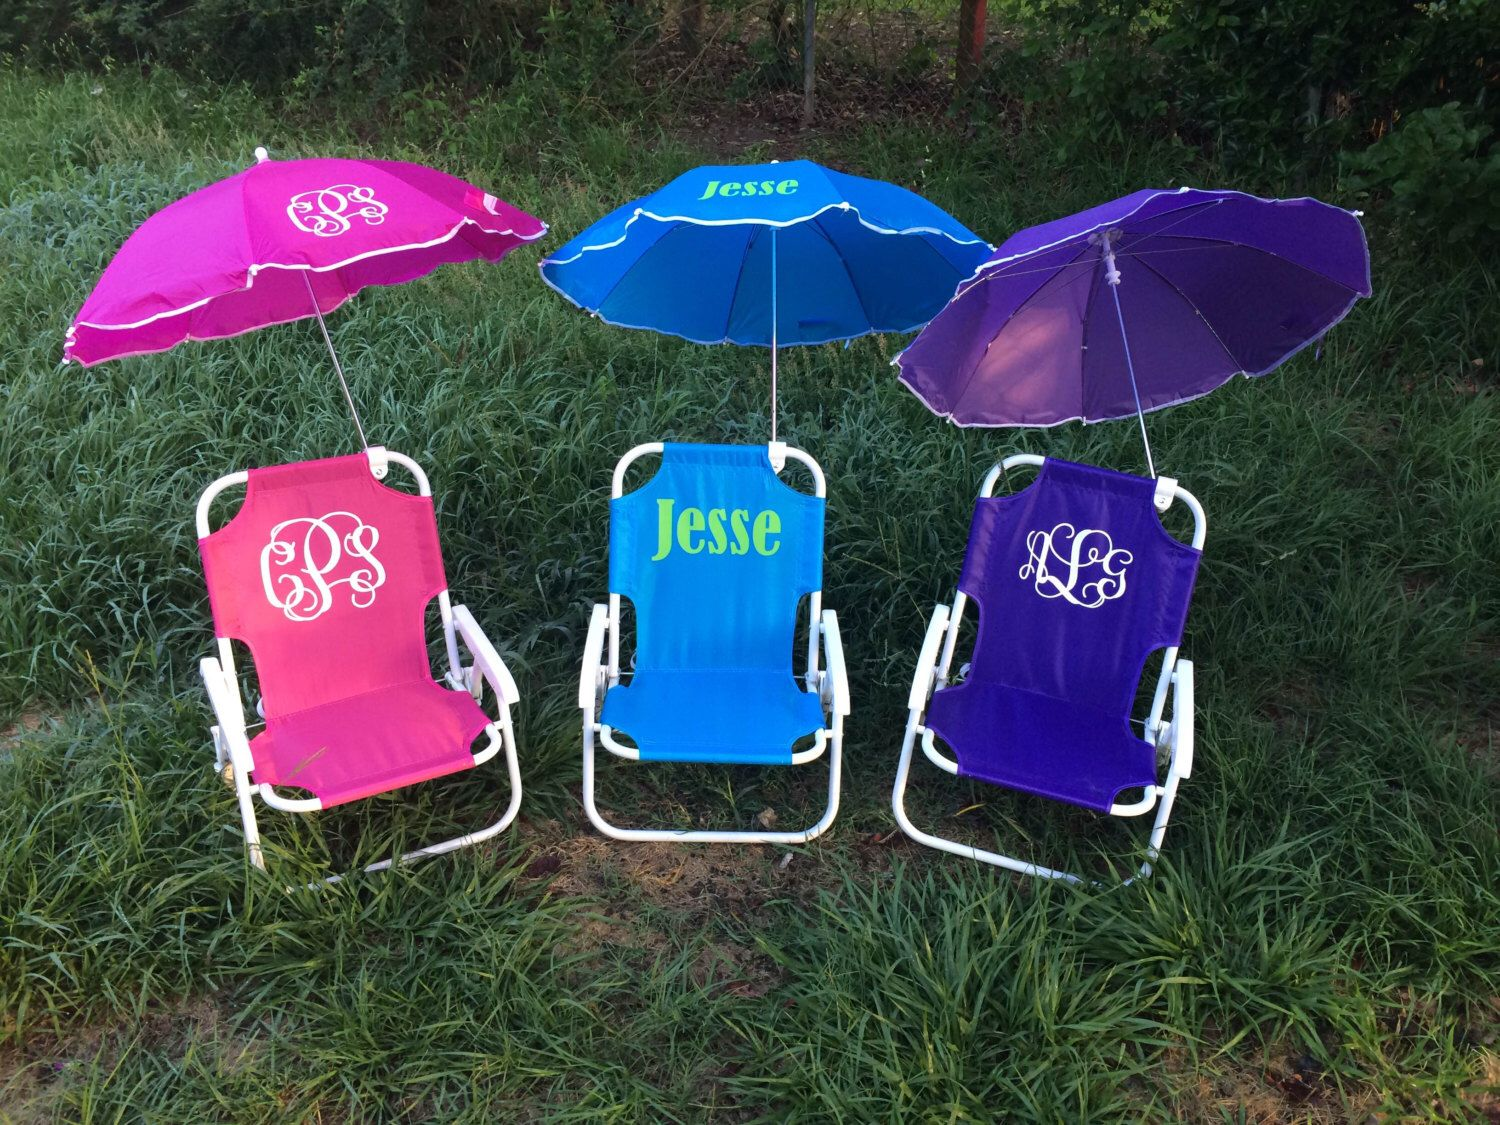 Toddler Beach Chairs Iron Peacock Chair Pin By Peyton Hisel On Vacation Pinterest How To Create A Backyard Oasis Home Furniture Design